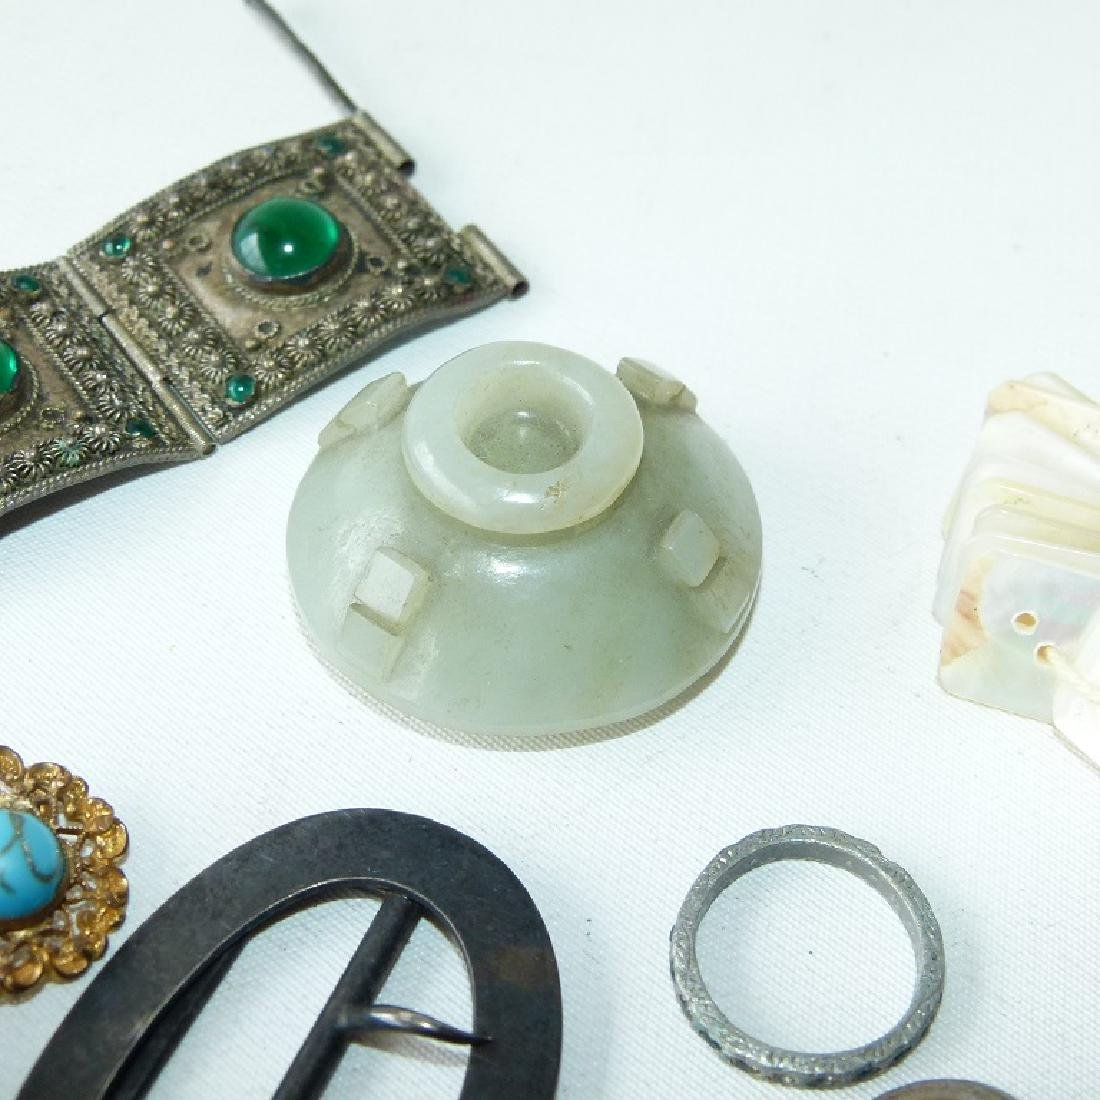 LOT ASSORTED VICTORIAN RINGS/FINDINGS 19/20TH C. - 9